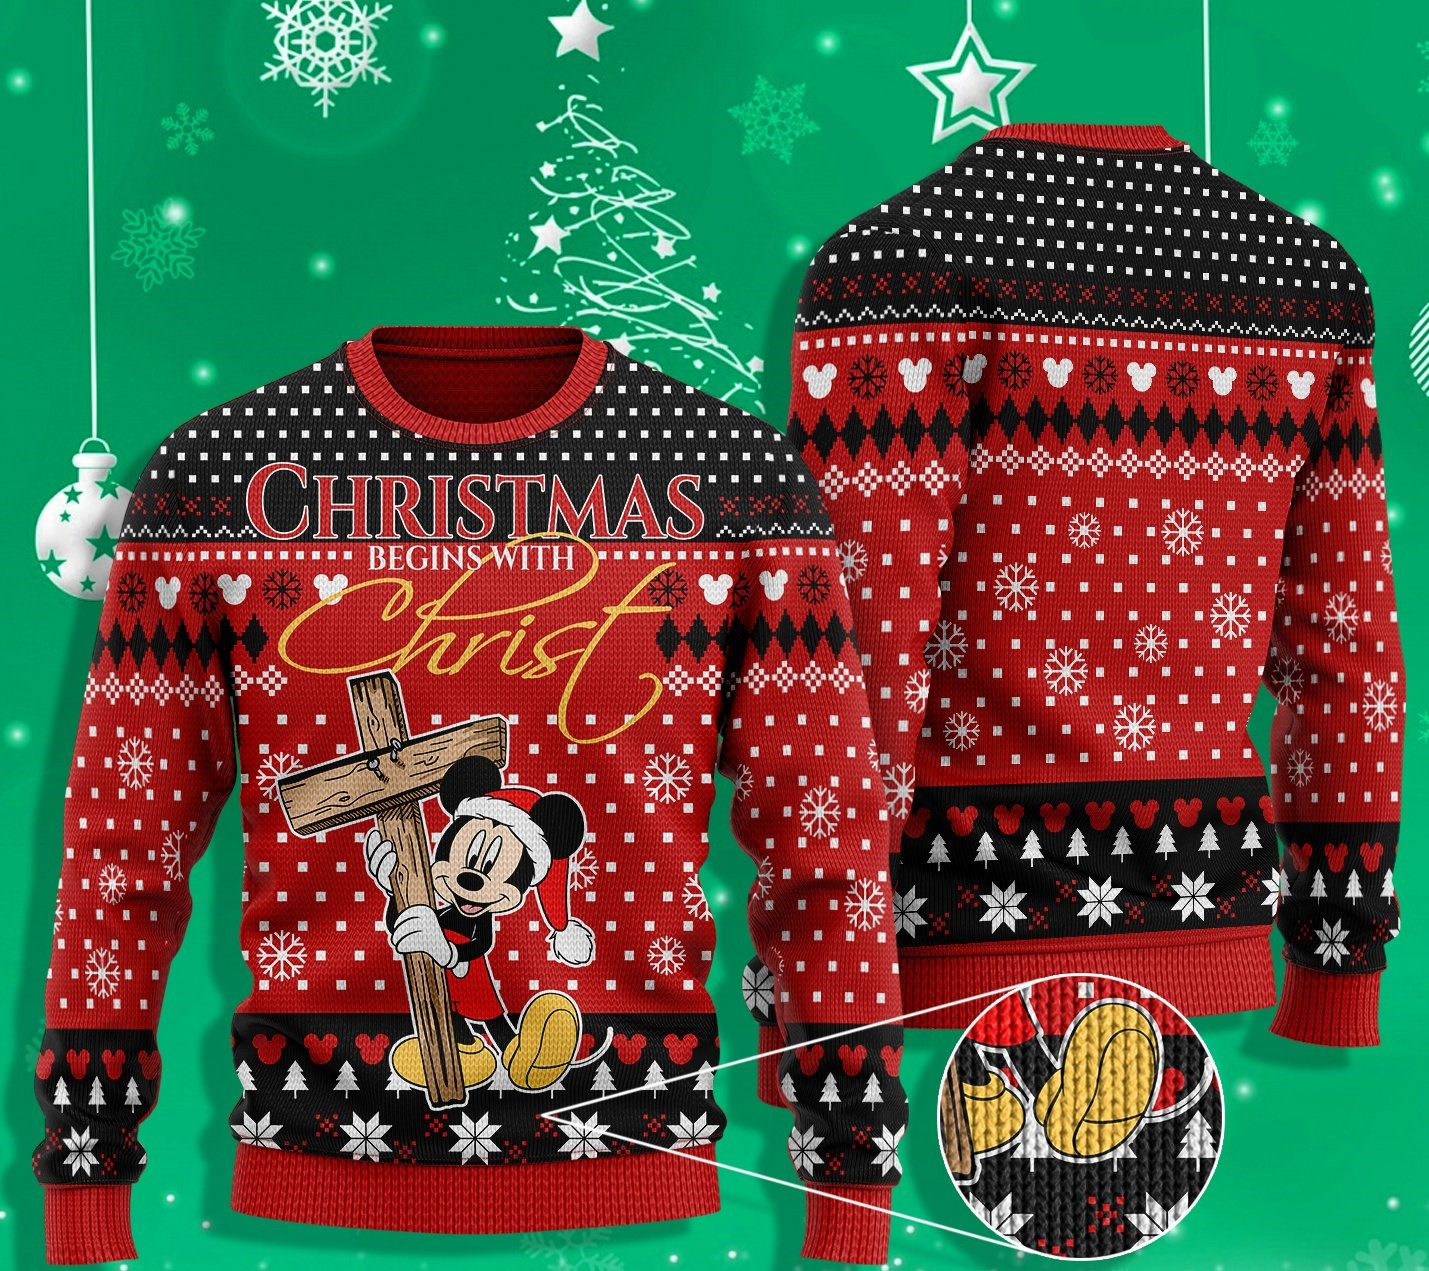 mickey mouse christmas begins with Christ ugly christmas sweater 2 - Copy (2)